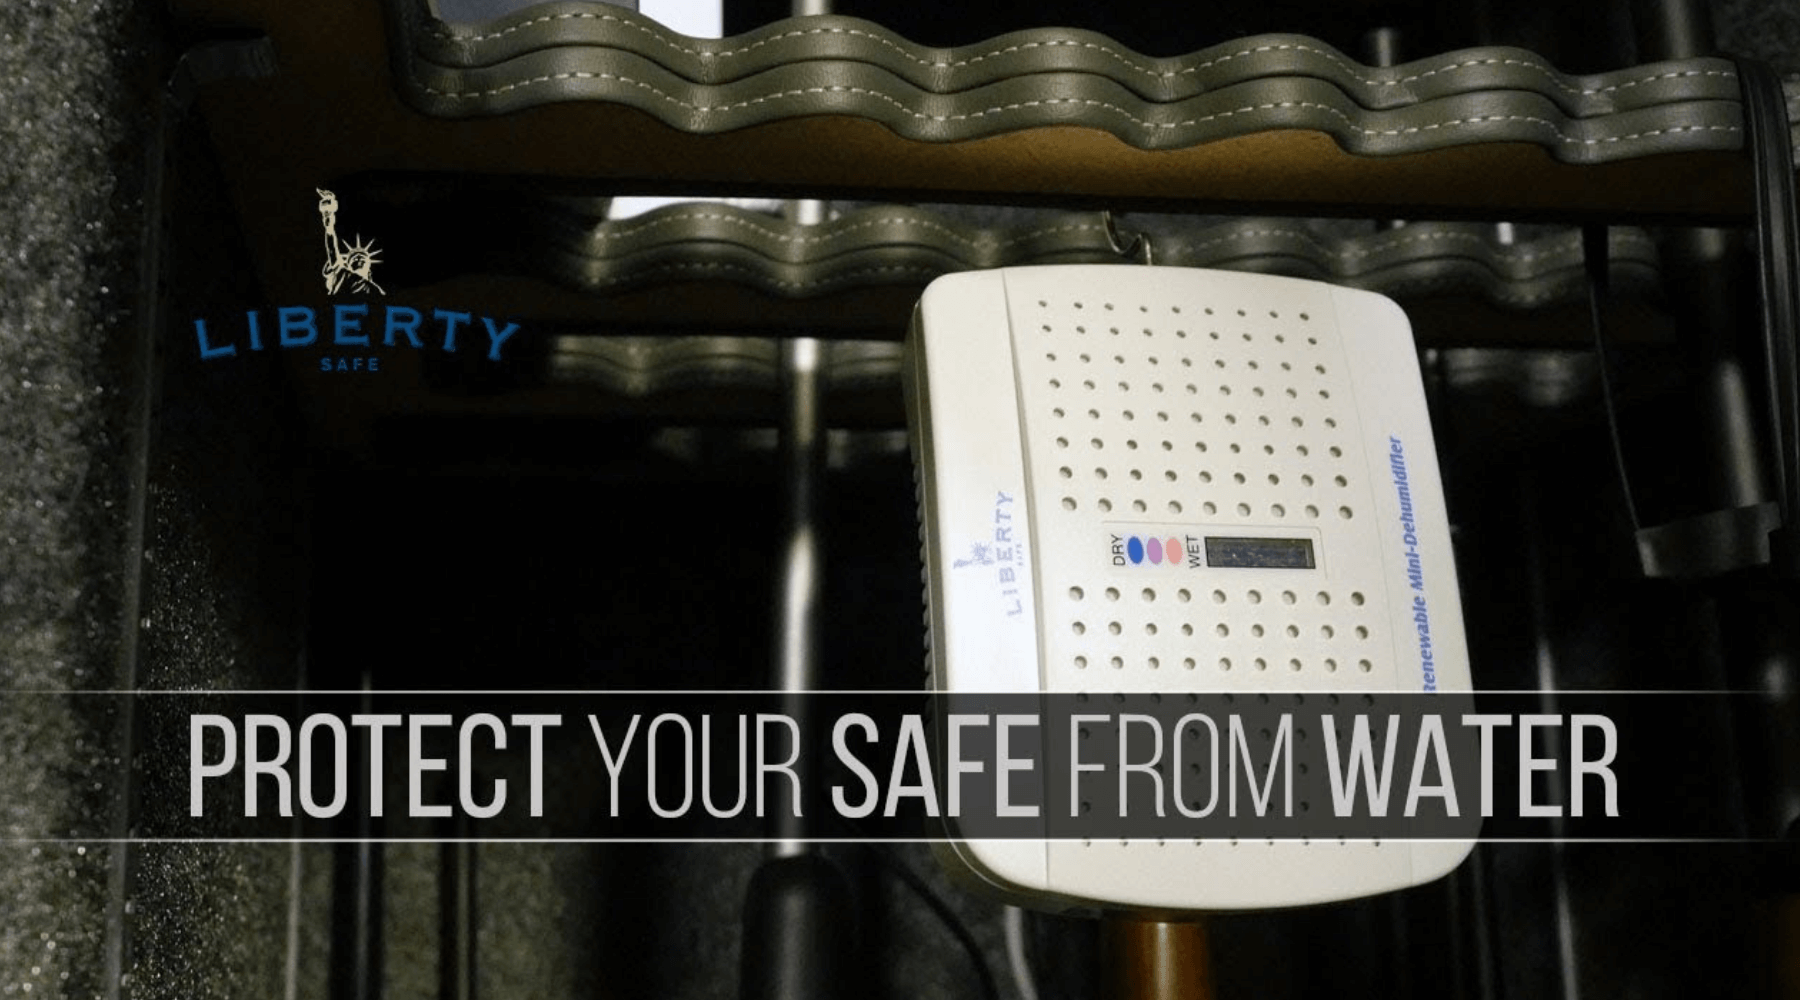 Liberty-Safe-Accessory-Dehumidifier-Protect-from-Humidity